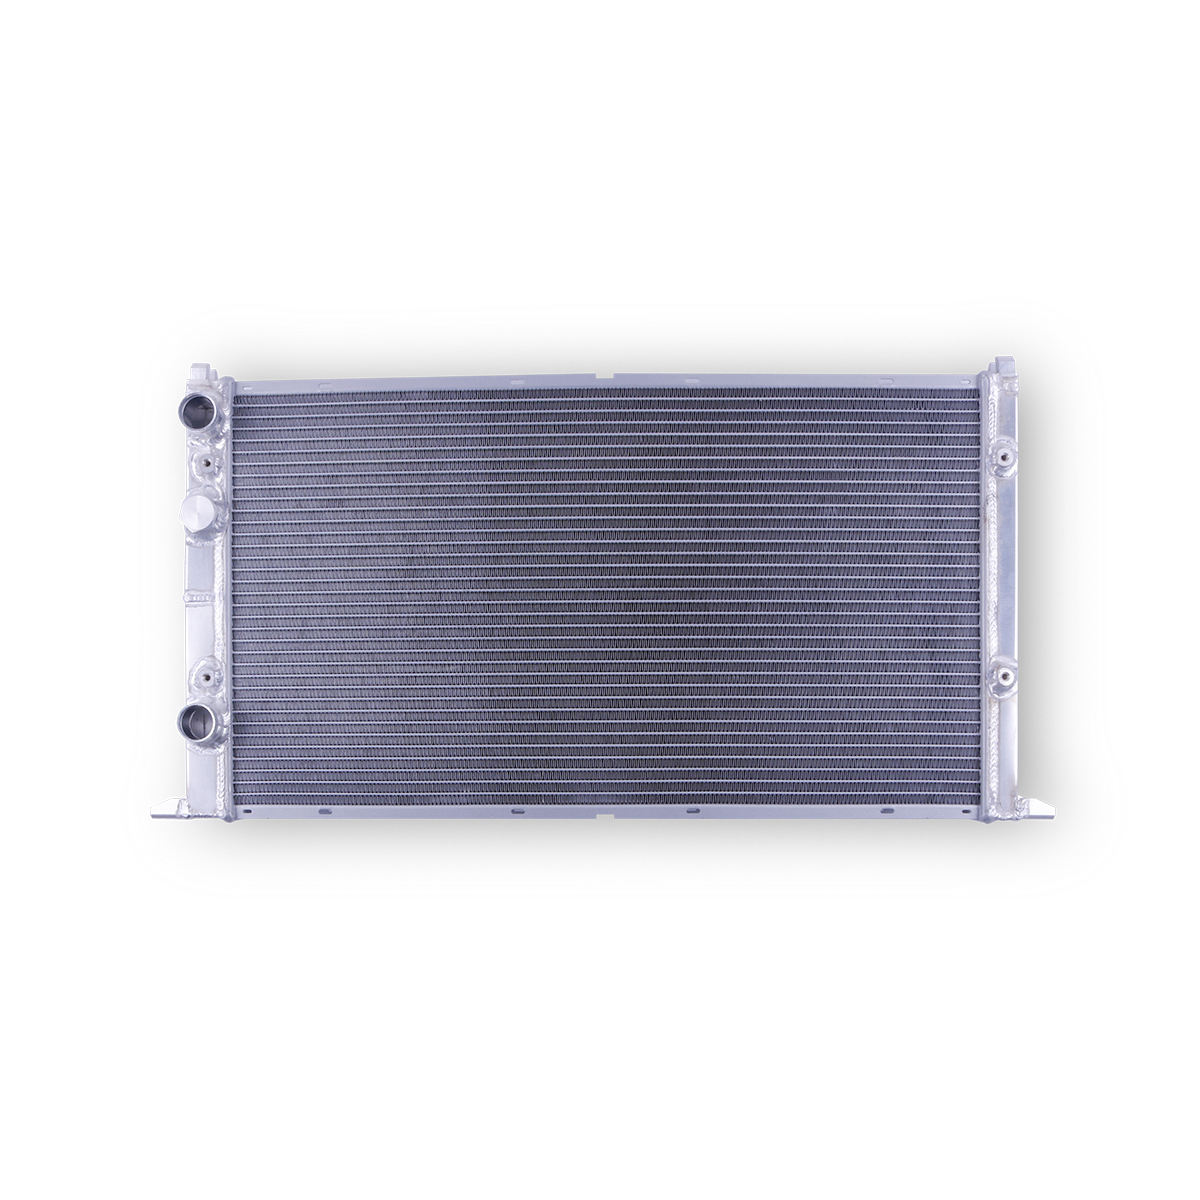 High Performance Aluminum Radiator Manufacture 3 Rows For 1994 -2002 Dodge Ram 2500/3500 5.9L 6.7L Diesel Cummins